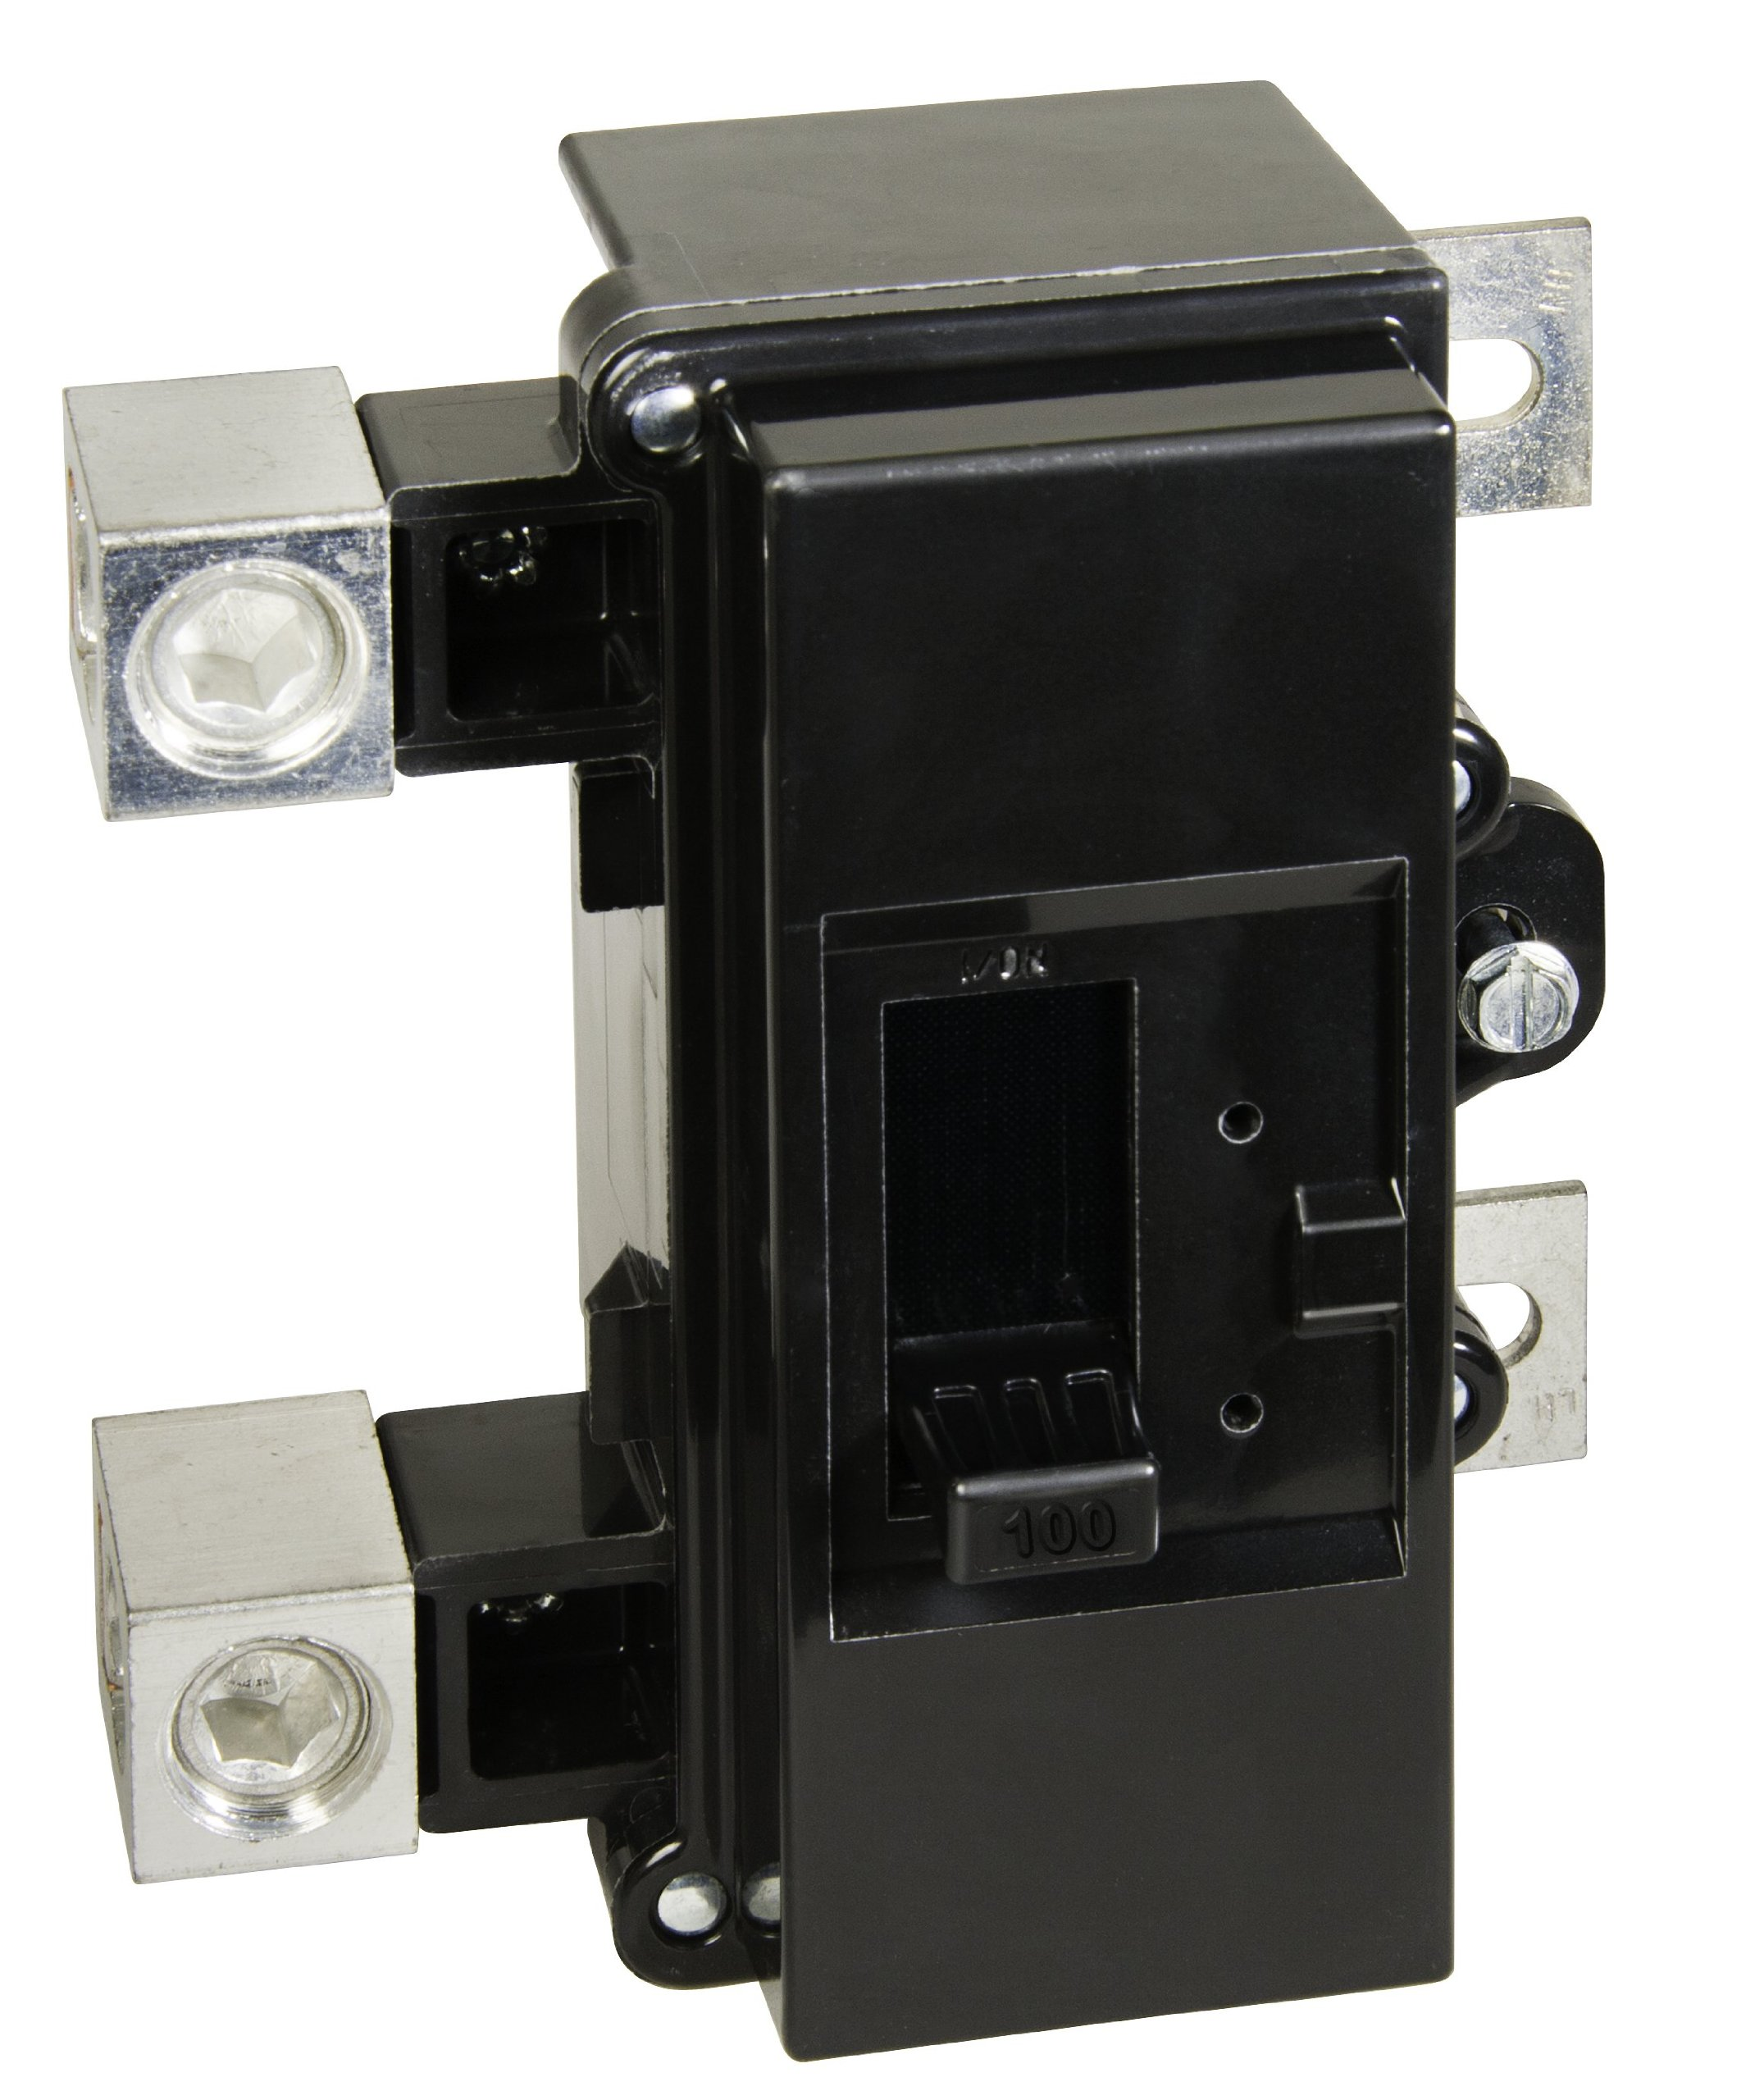 Square D by Schneider Electric QOM2100VH 100-Amp QOM2 Frame Size Main Circuit Breaker for QO and Homeline Load Centers